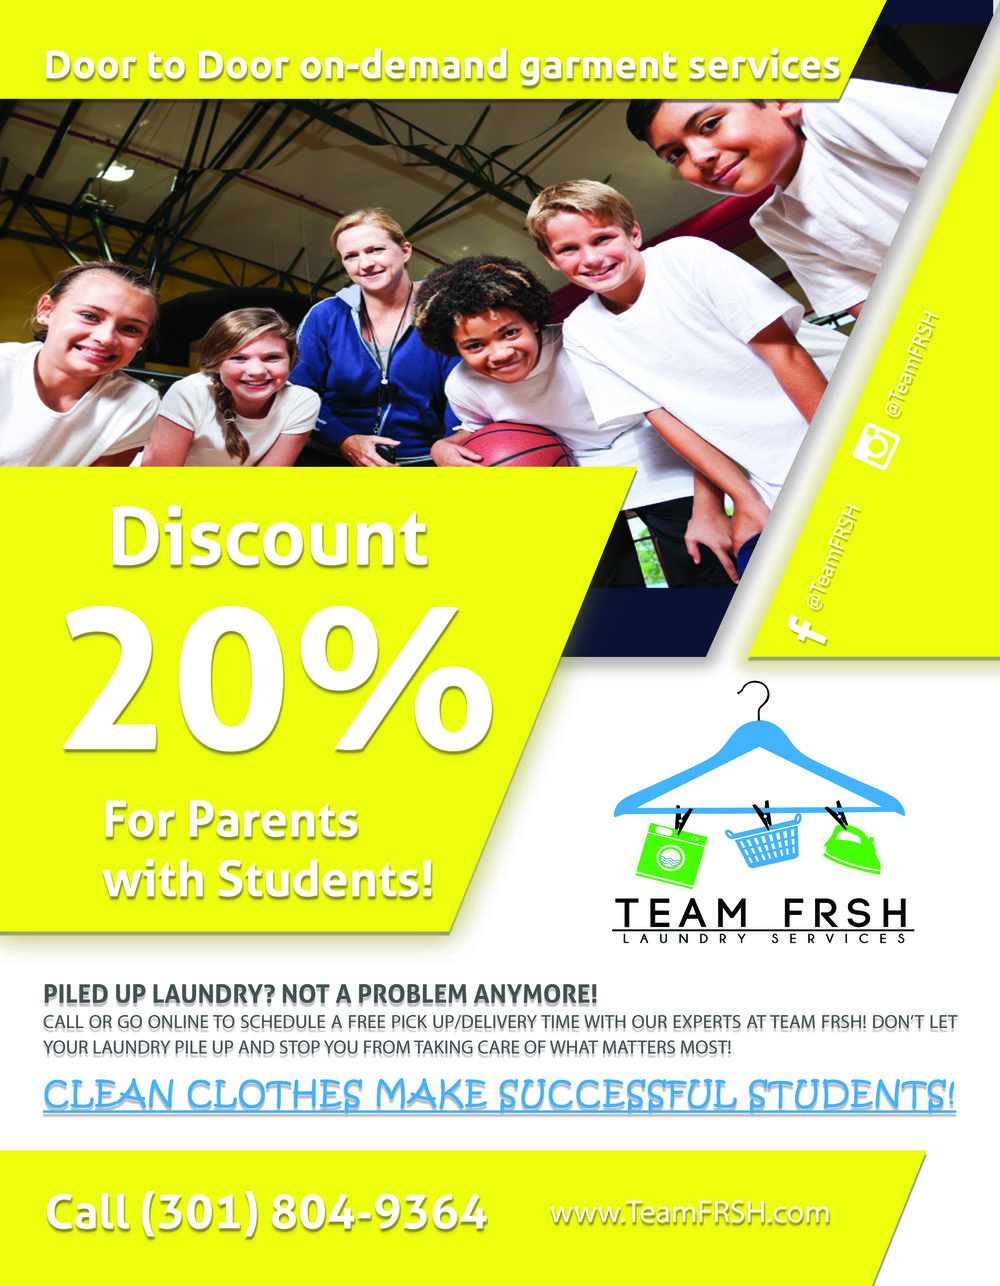 TeamFRSH.flyer4.jpg